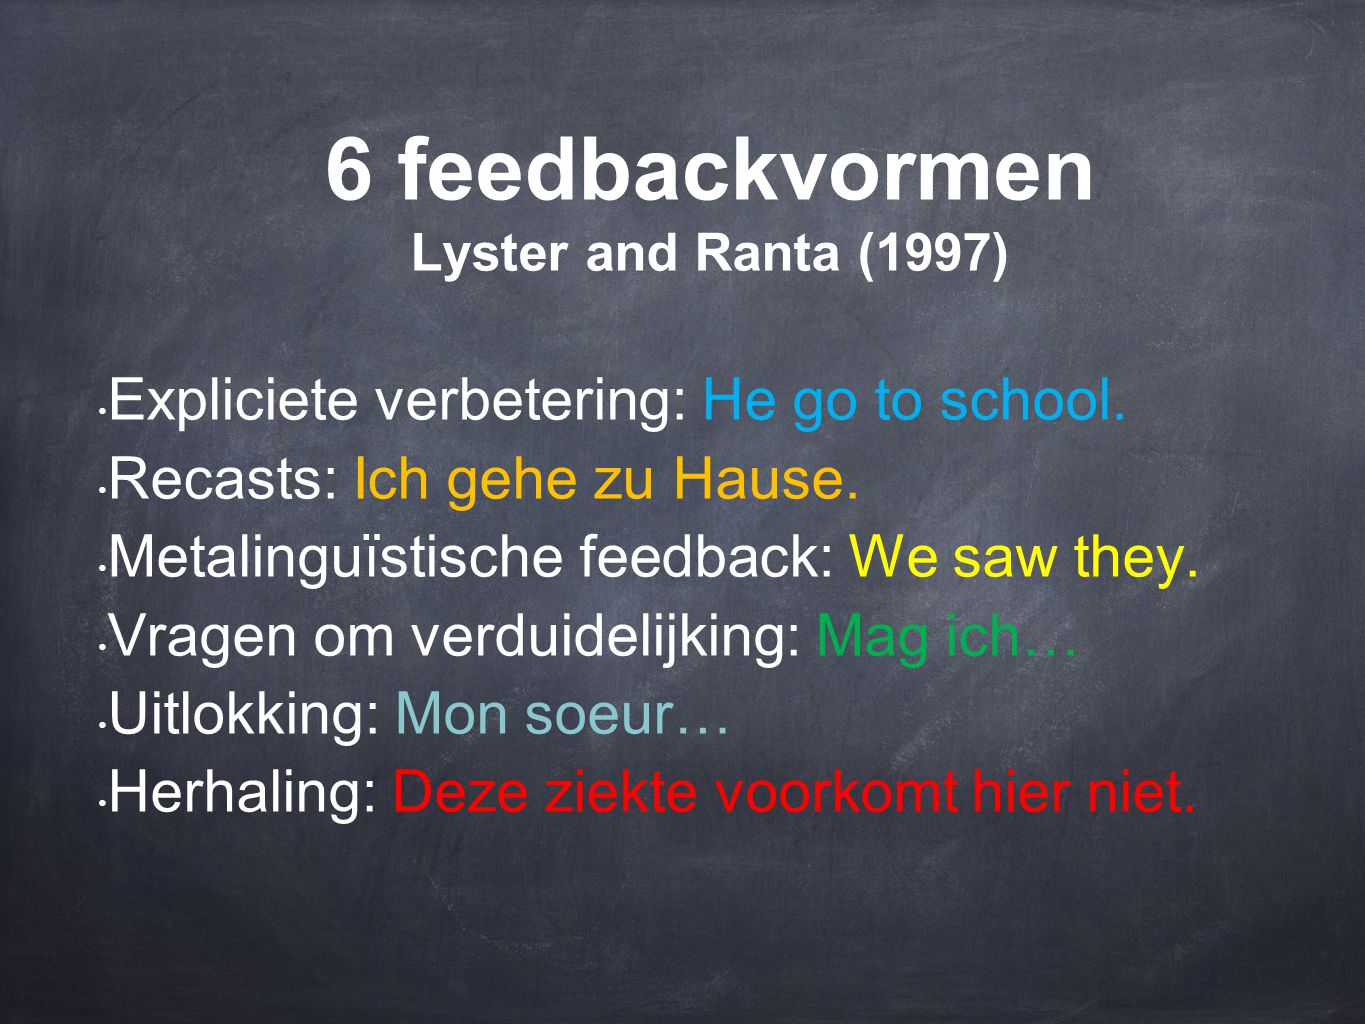 6 feedbackvormen Lyster and Ranta (1997) • Expliciete verbetering: He go to school. • Recasts: Ich gehe zu Hause. • Metalinguïstische feedback: We saw